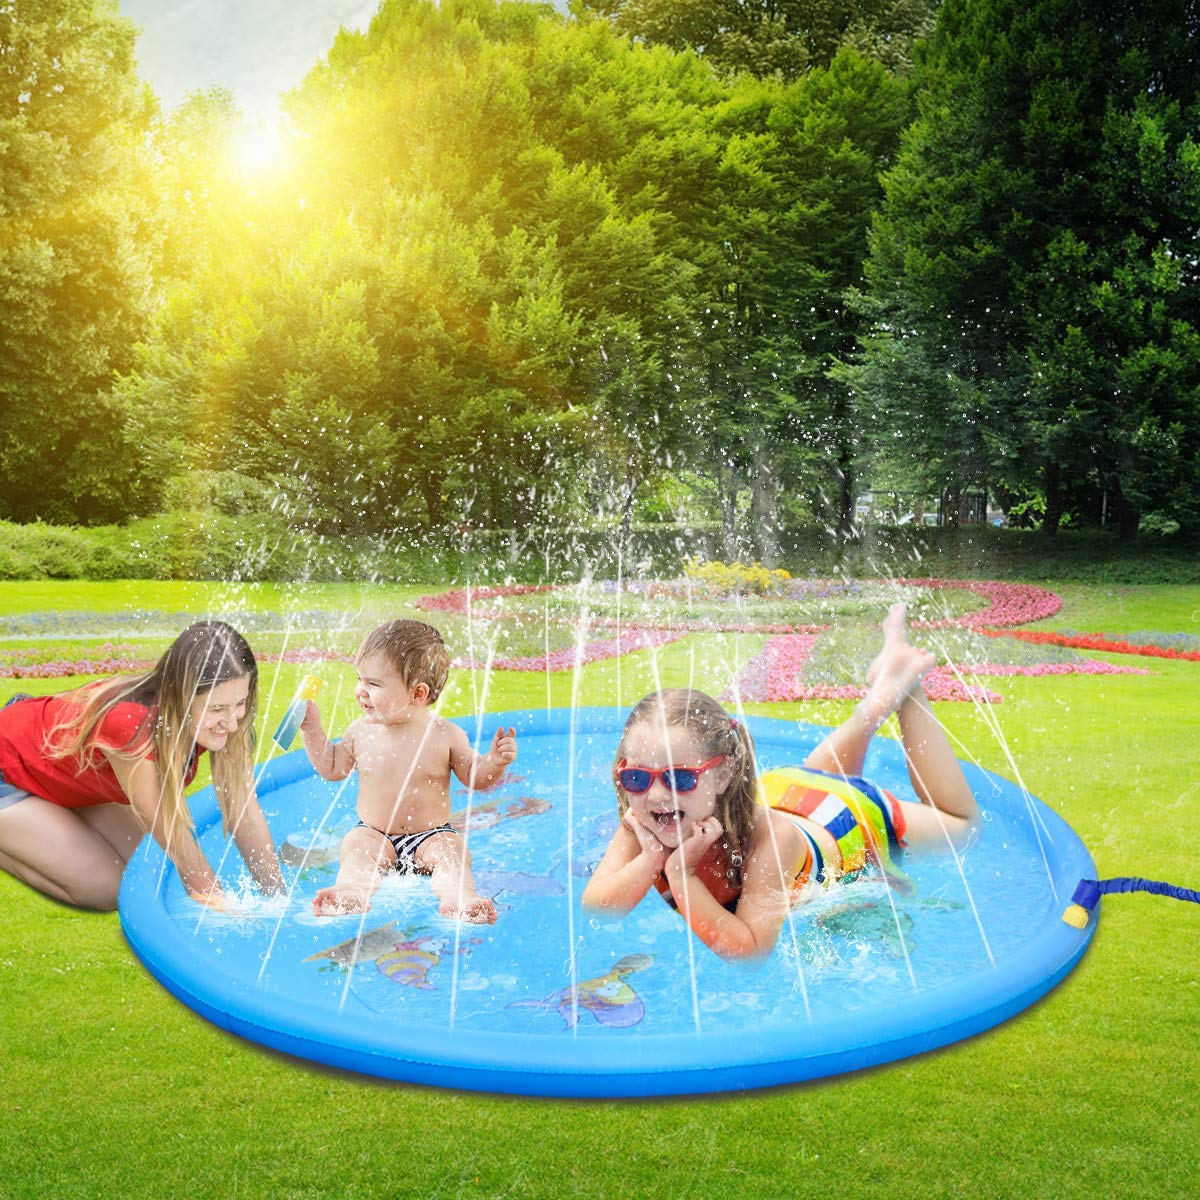 Sprinkle And Splash Play Mat Outdoor Summer Water Play Pad Toy Swimming Party Gift For Kids Children Toddlers Boys Girls Blue